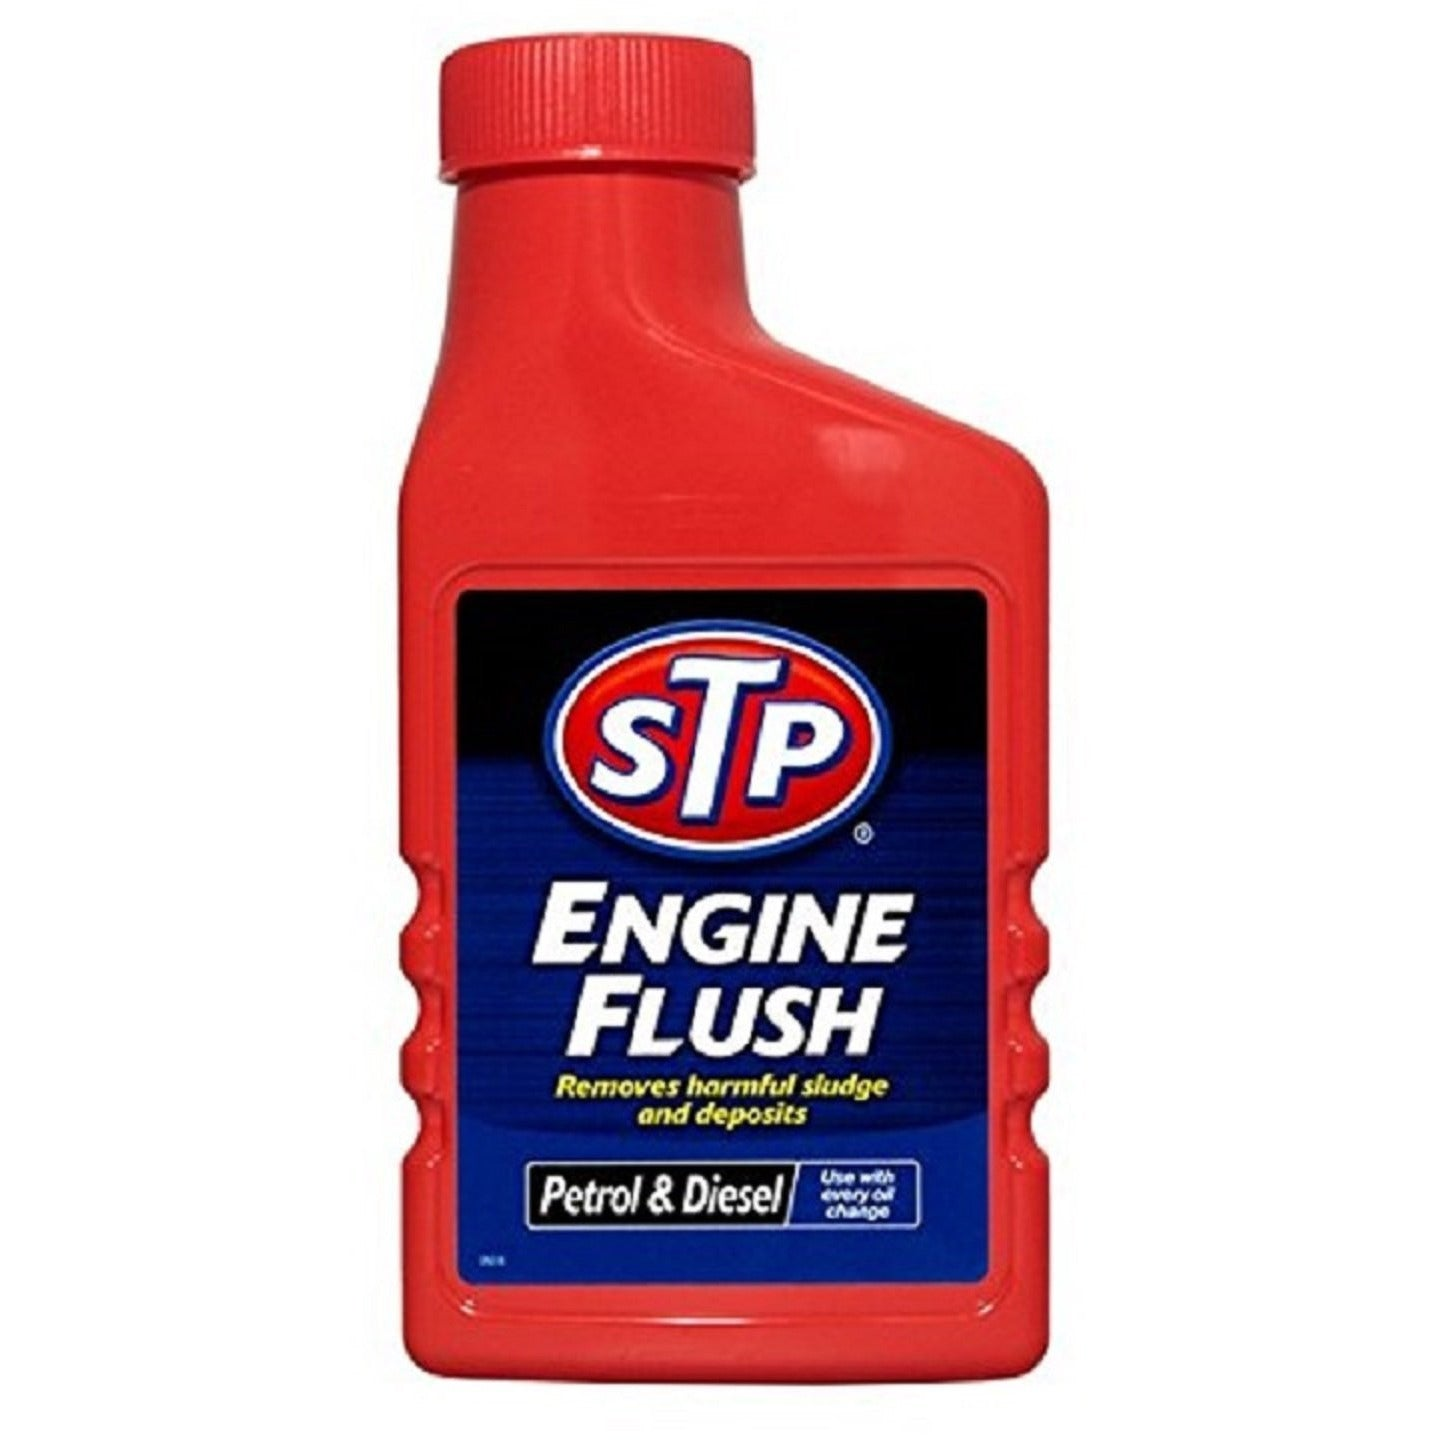 STP ENGINE FLUSH (450 ml)